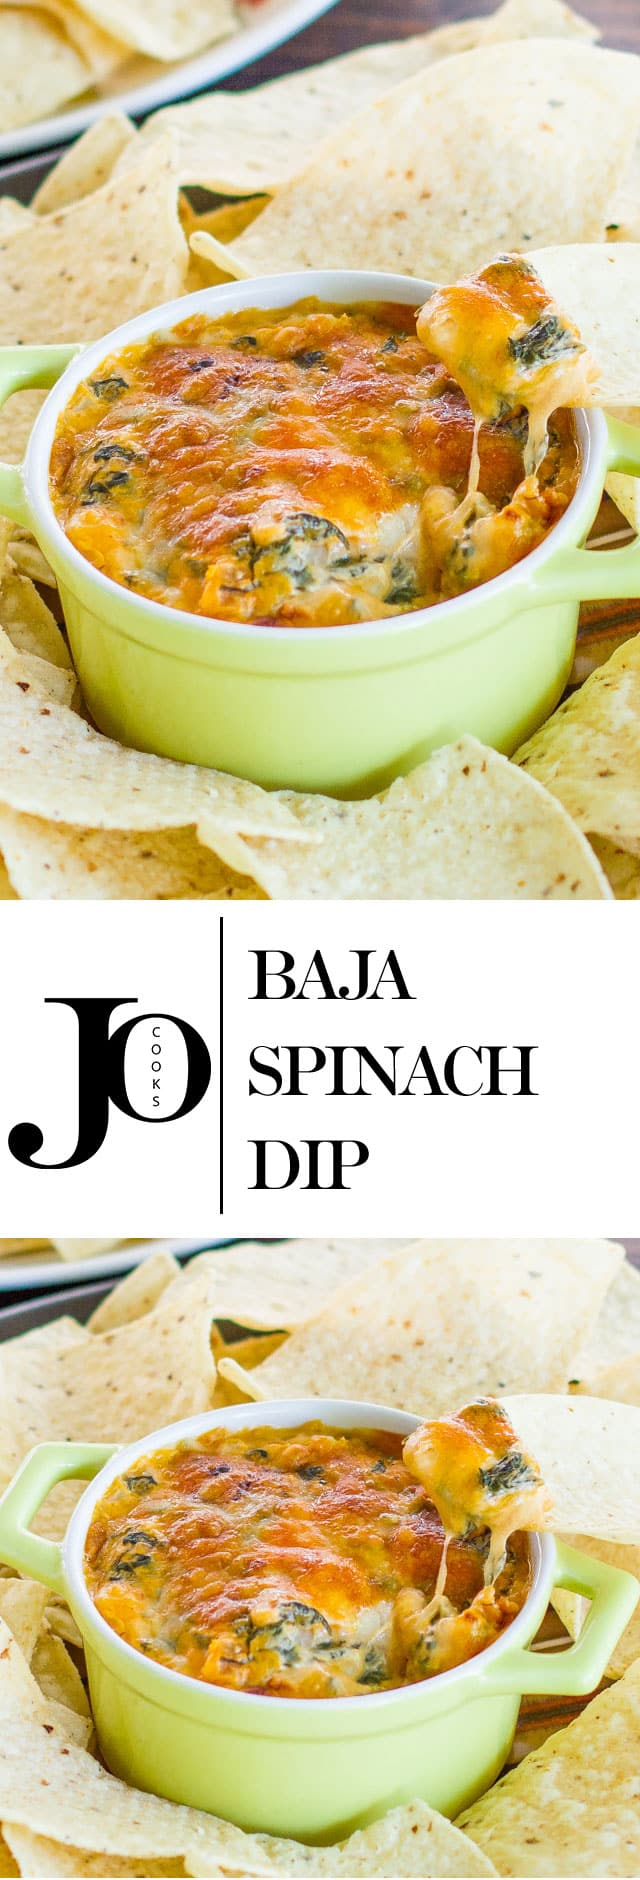 Baja Spinach Dip – even if you are no fan of spinach, you will want to indulge in this delicious dip. It's cheesy, it's spicy, it's phenomenal!